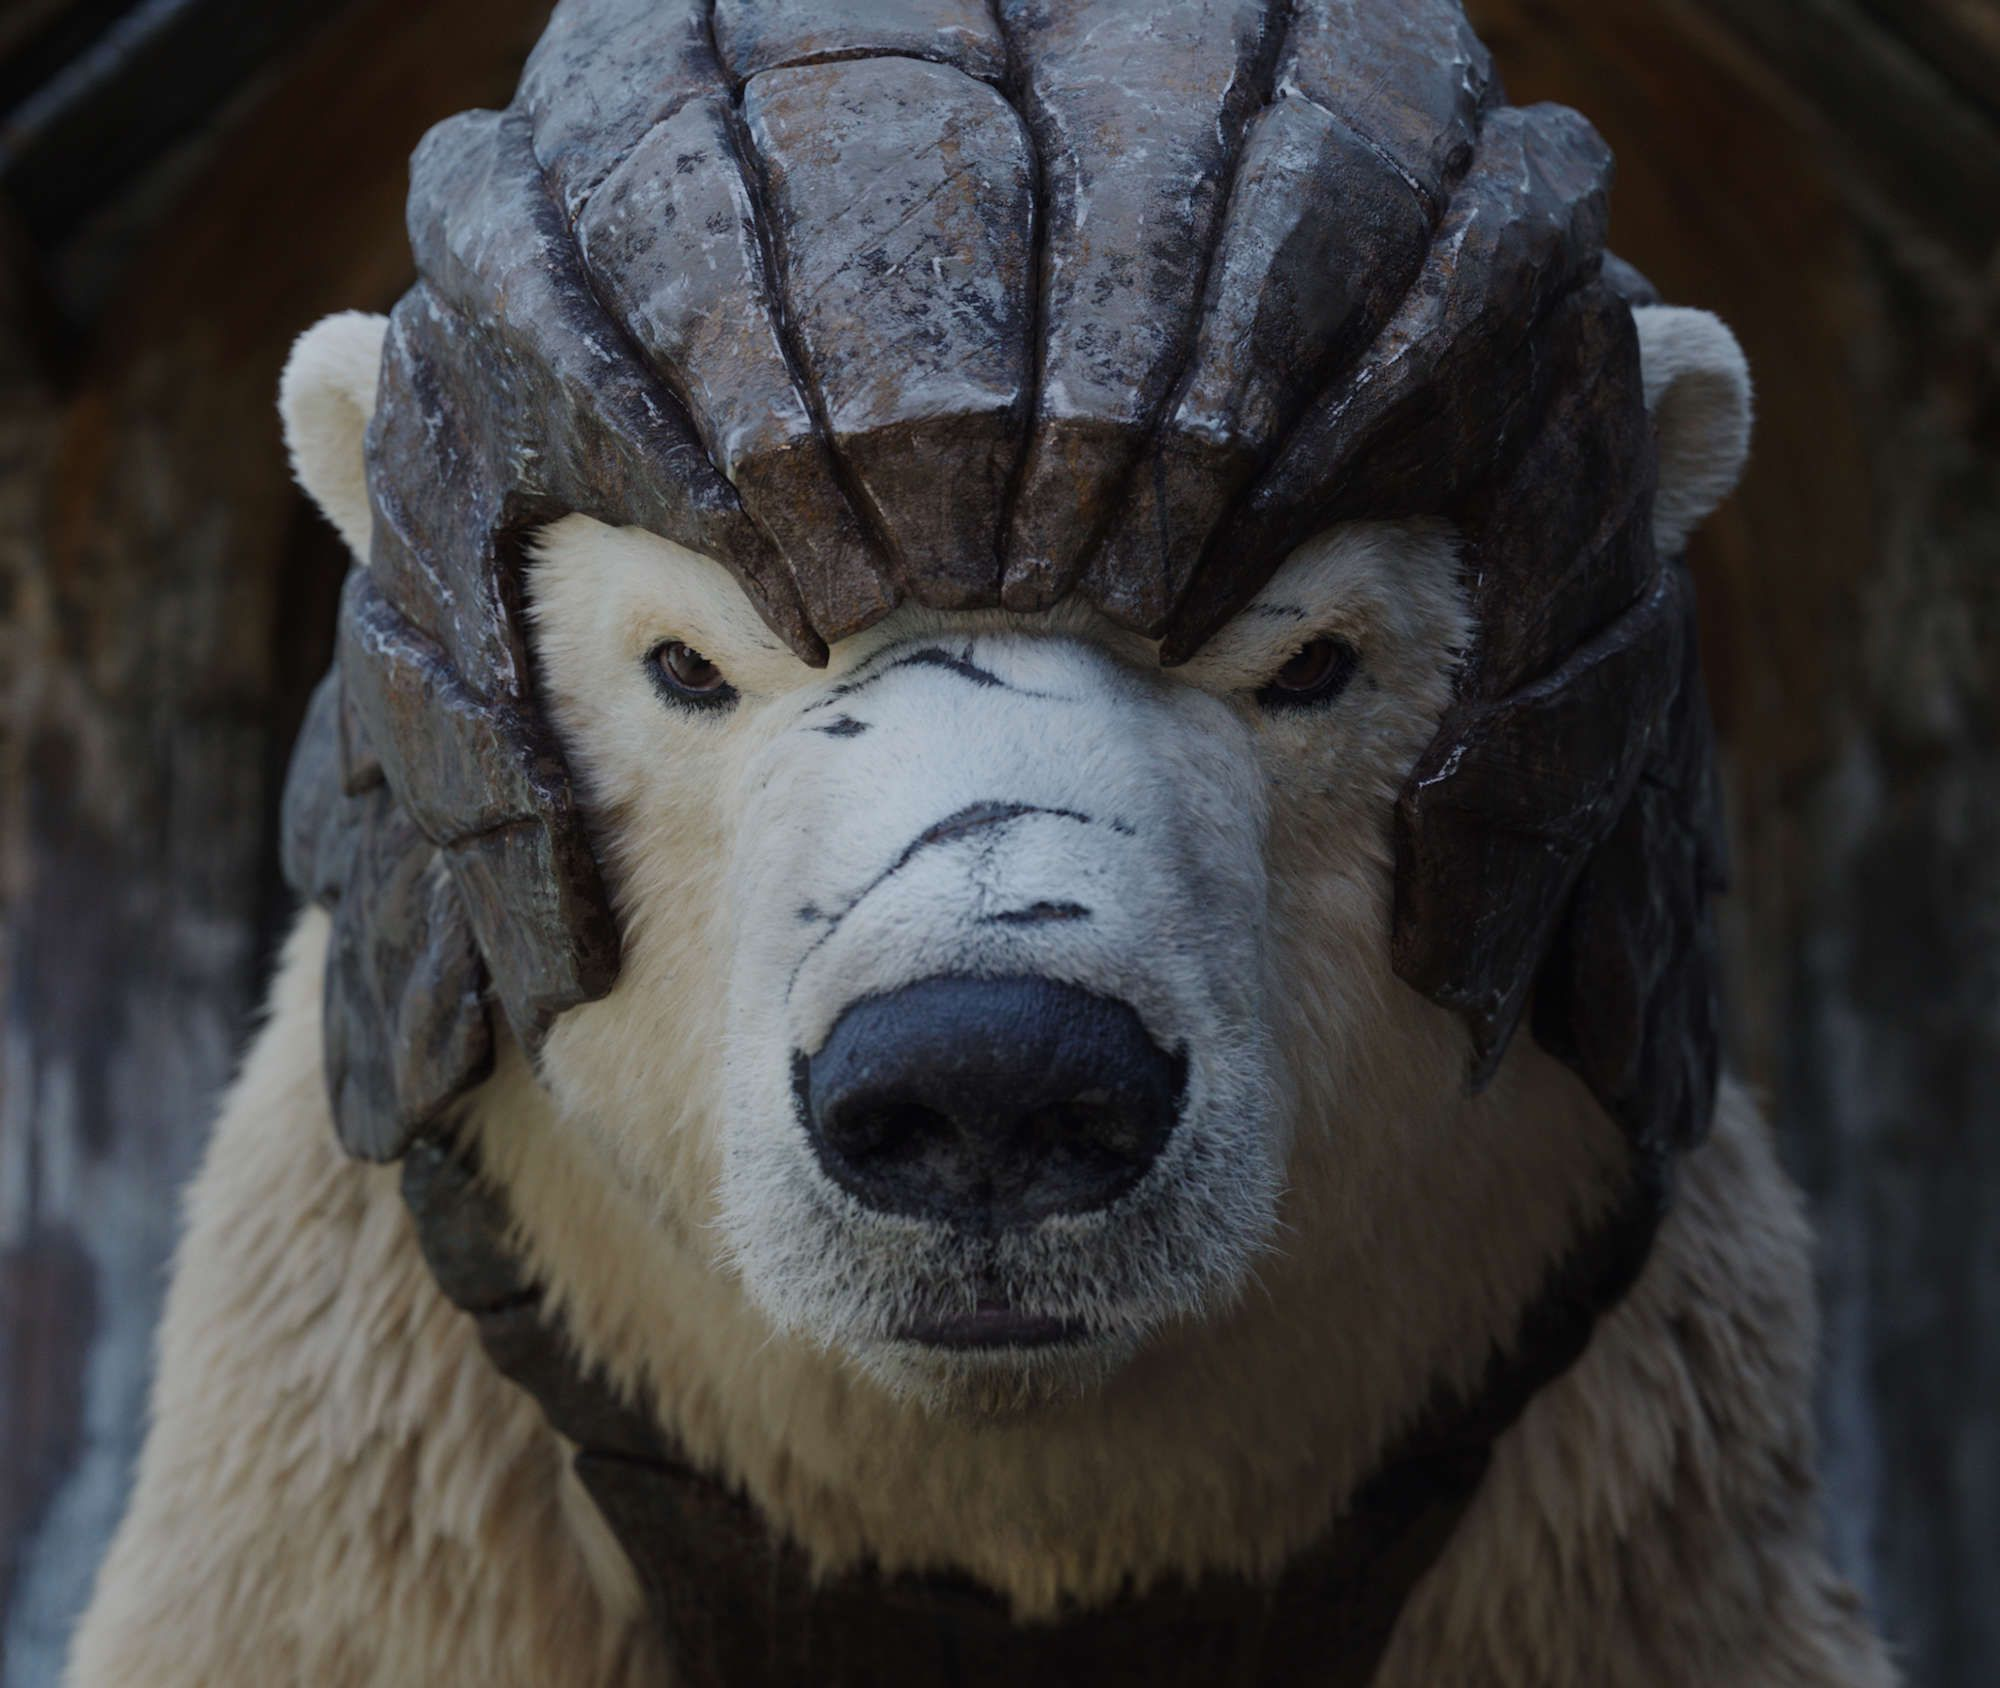 Everything We Know About HBO's 'His Dark Materials' #hisdarkmaterials